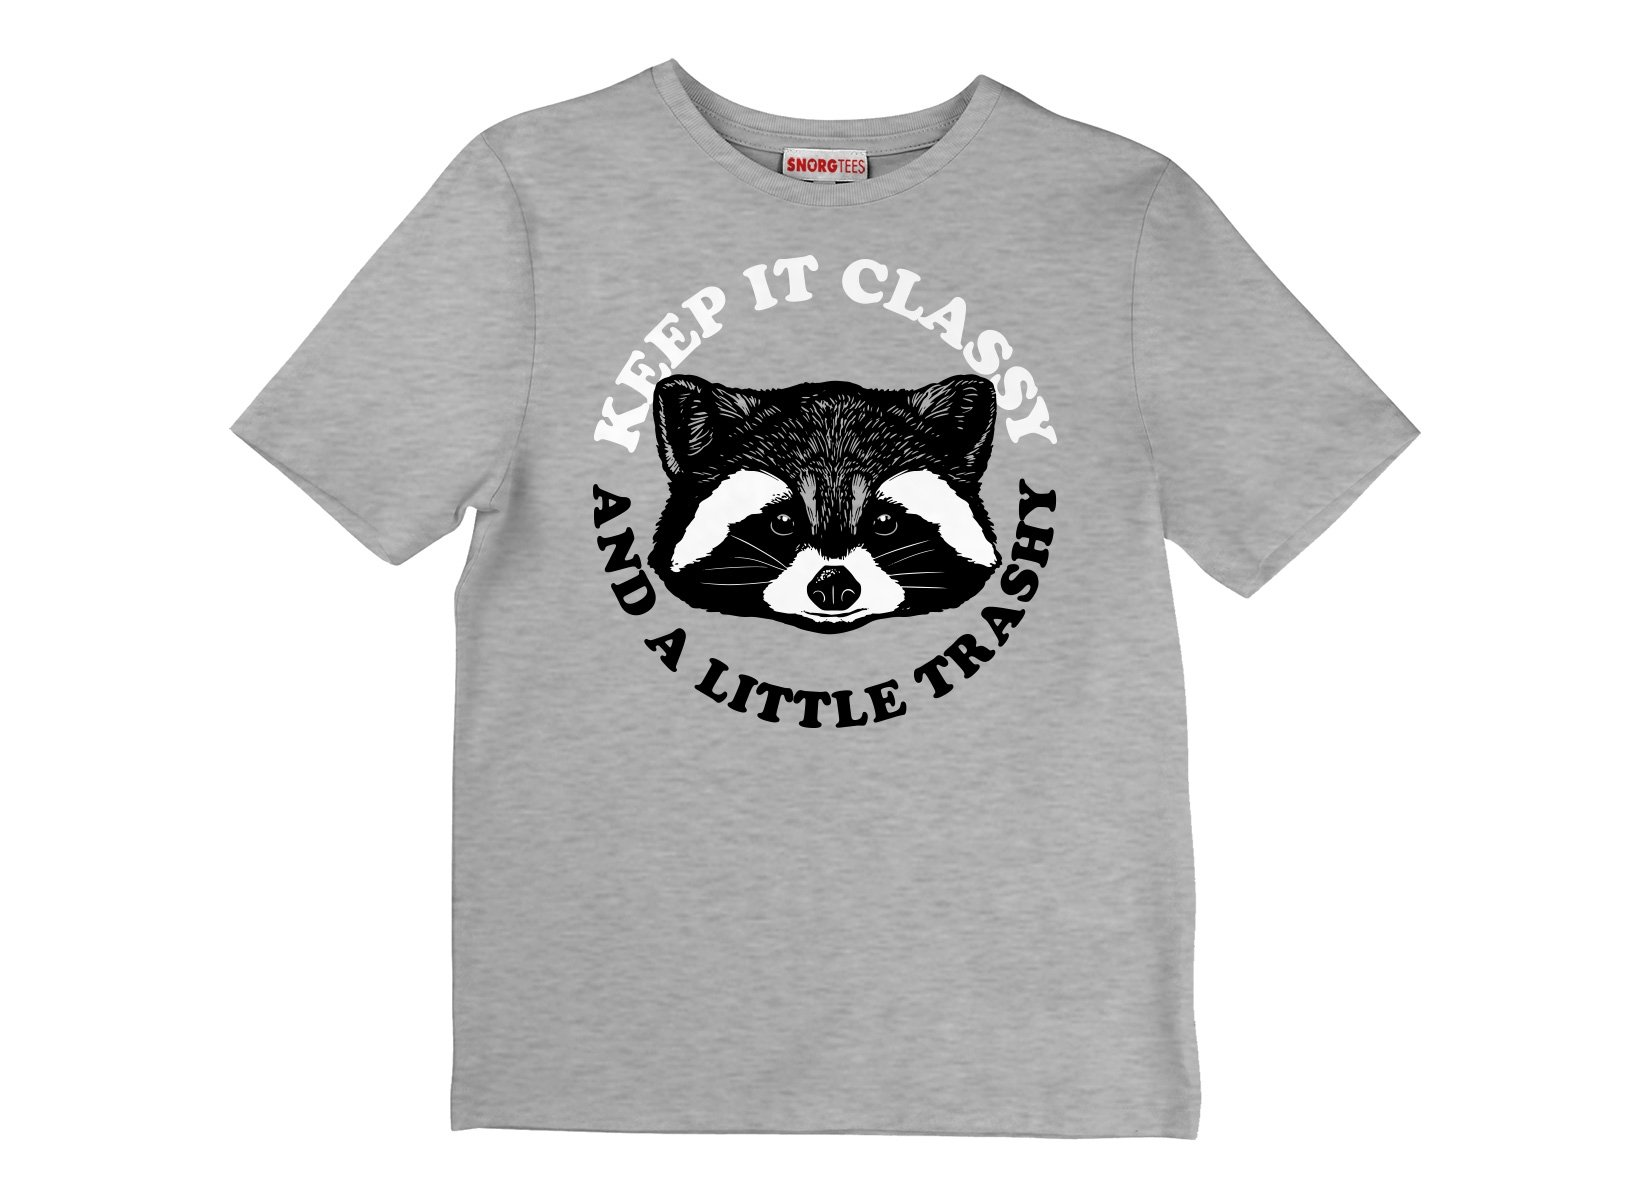 Keep It Classy And A Little Trashy on Kids T-Shirt